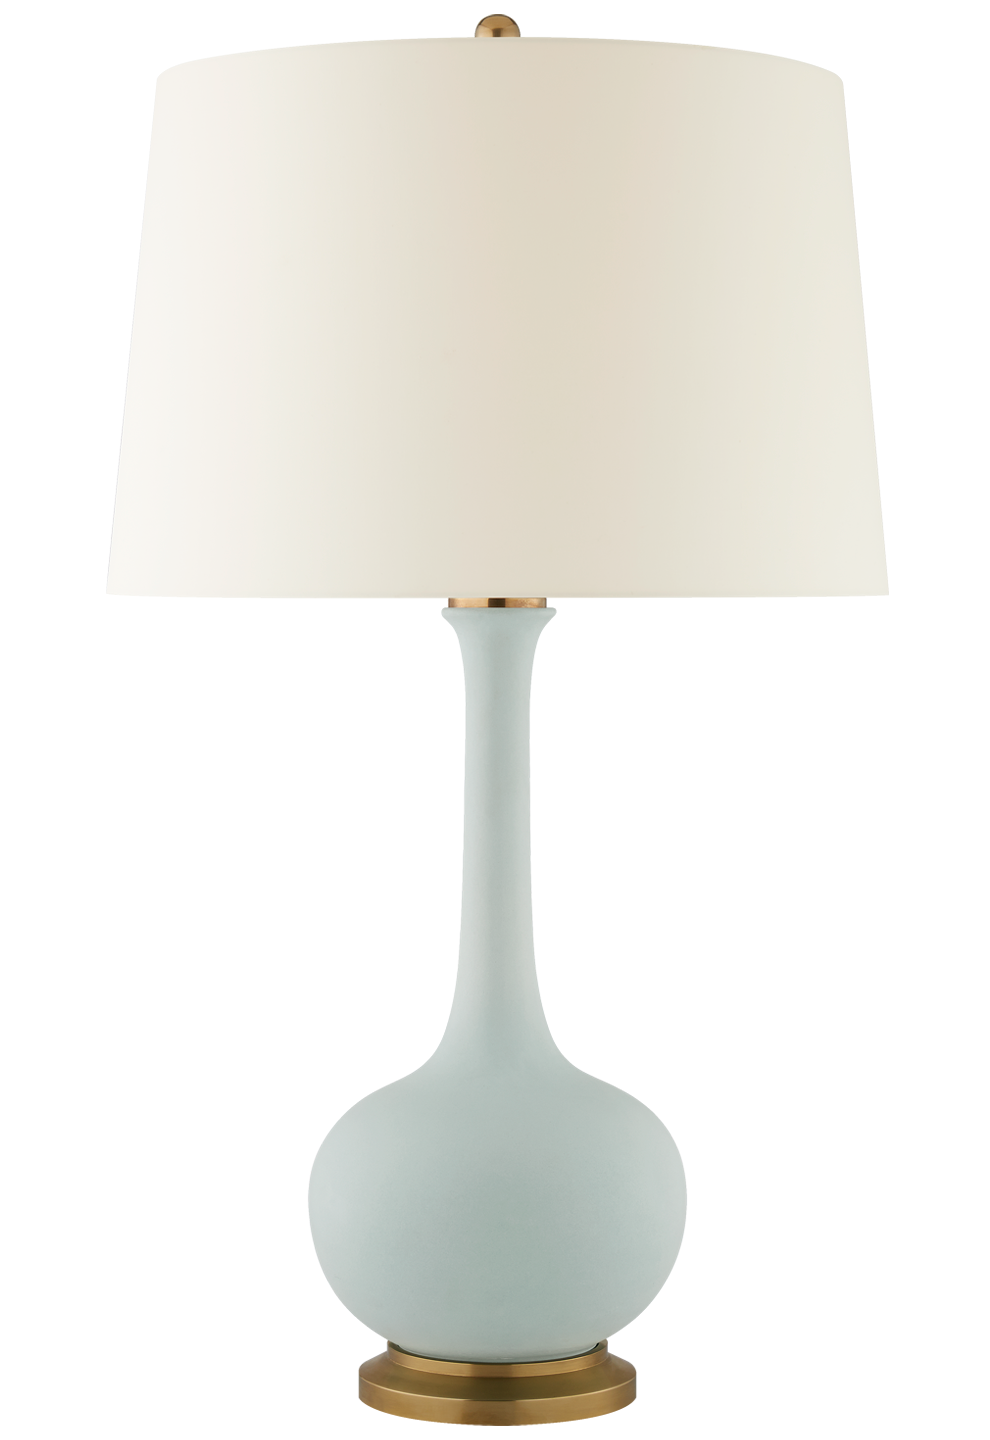 Fairford Small Table Lamp Large Table Lamps Table Lamps Uk